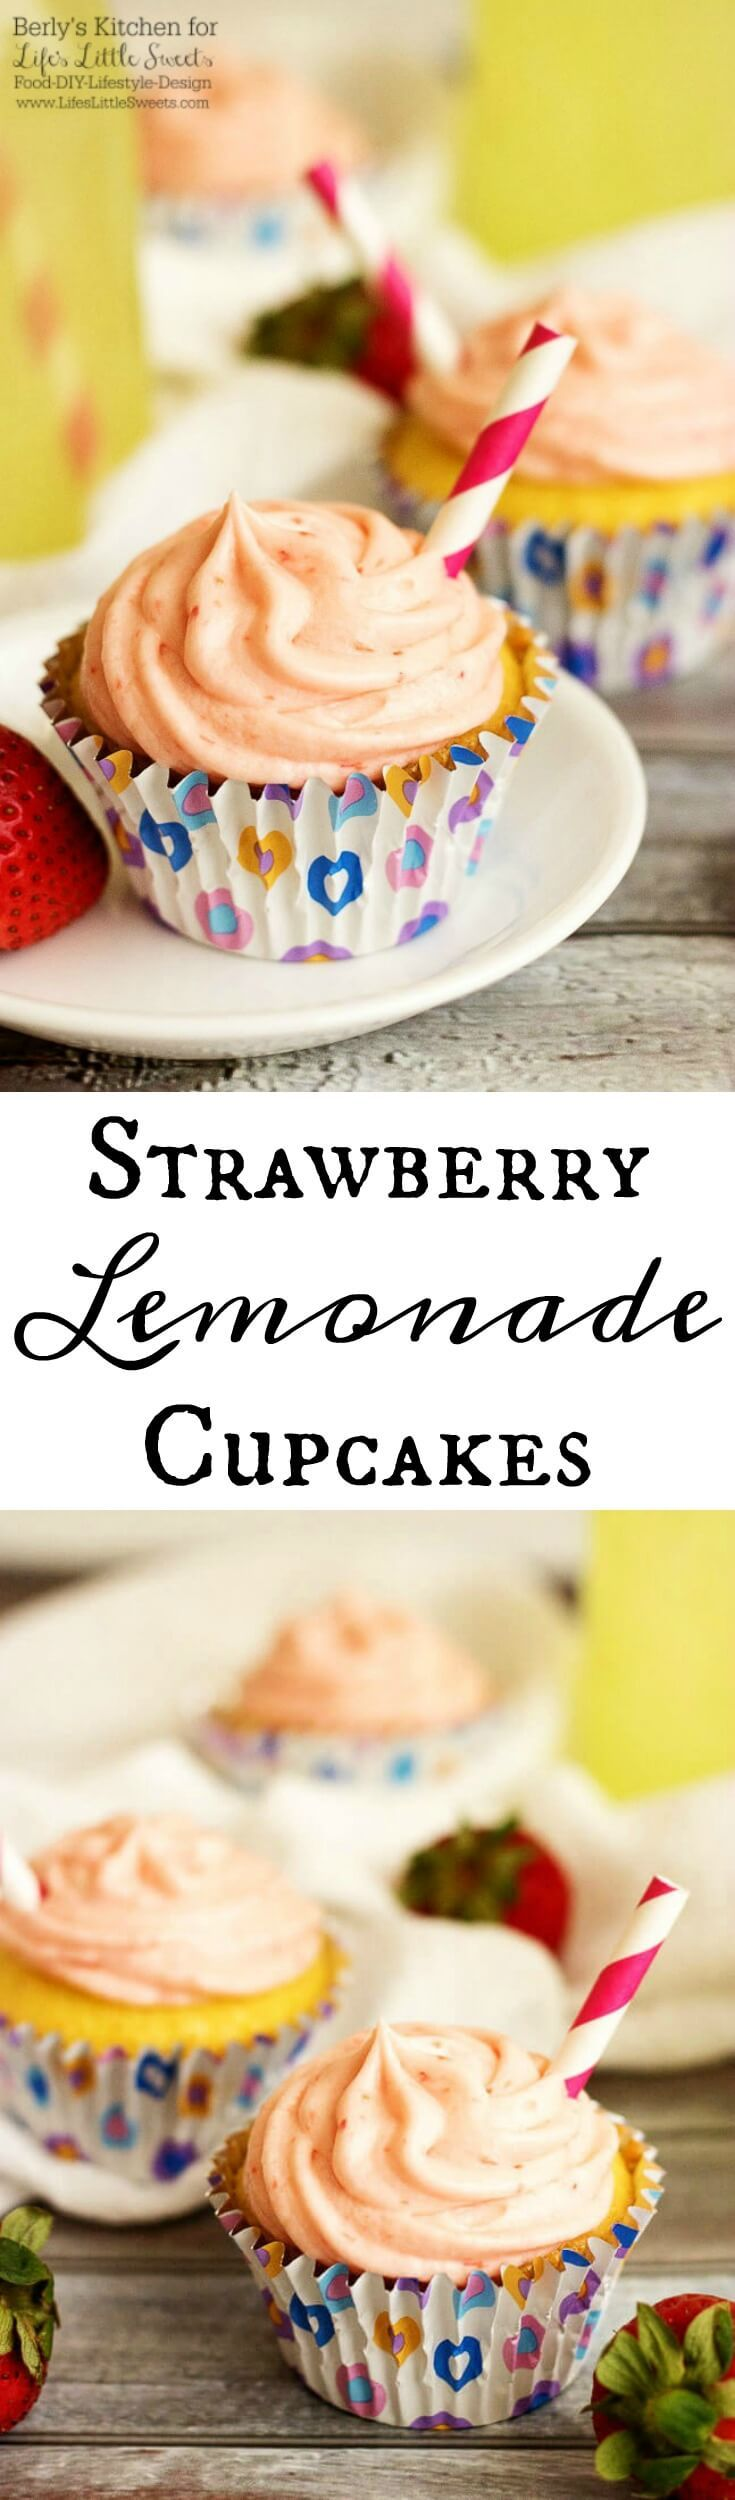 Mother's Day is almost upon us and what better way to show you care than to make something special for your amazing Mom? These Strawberry Lemonade Cupcakes are a semi-homemade but utterly delicious Mother's Day treat full of tangy lemon and strawberry flavors.